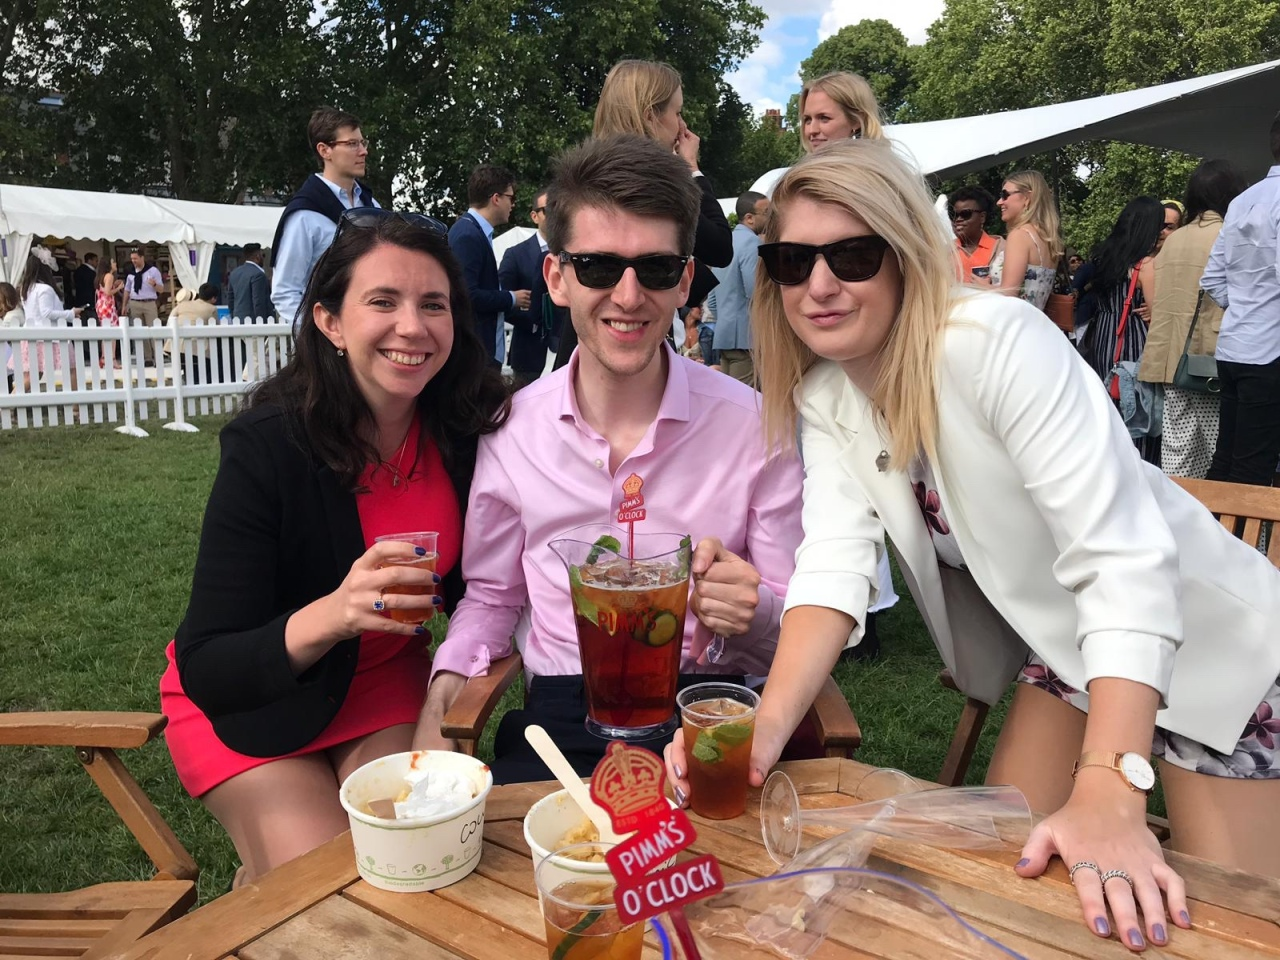 Pimms at polo in the park